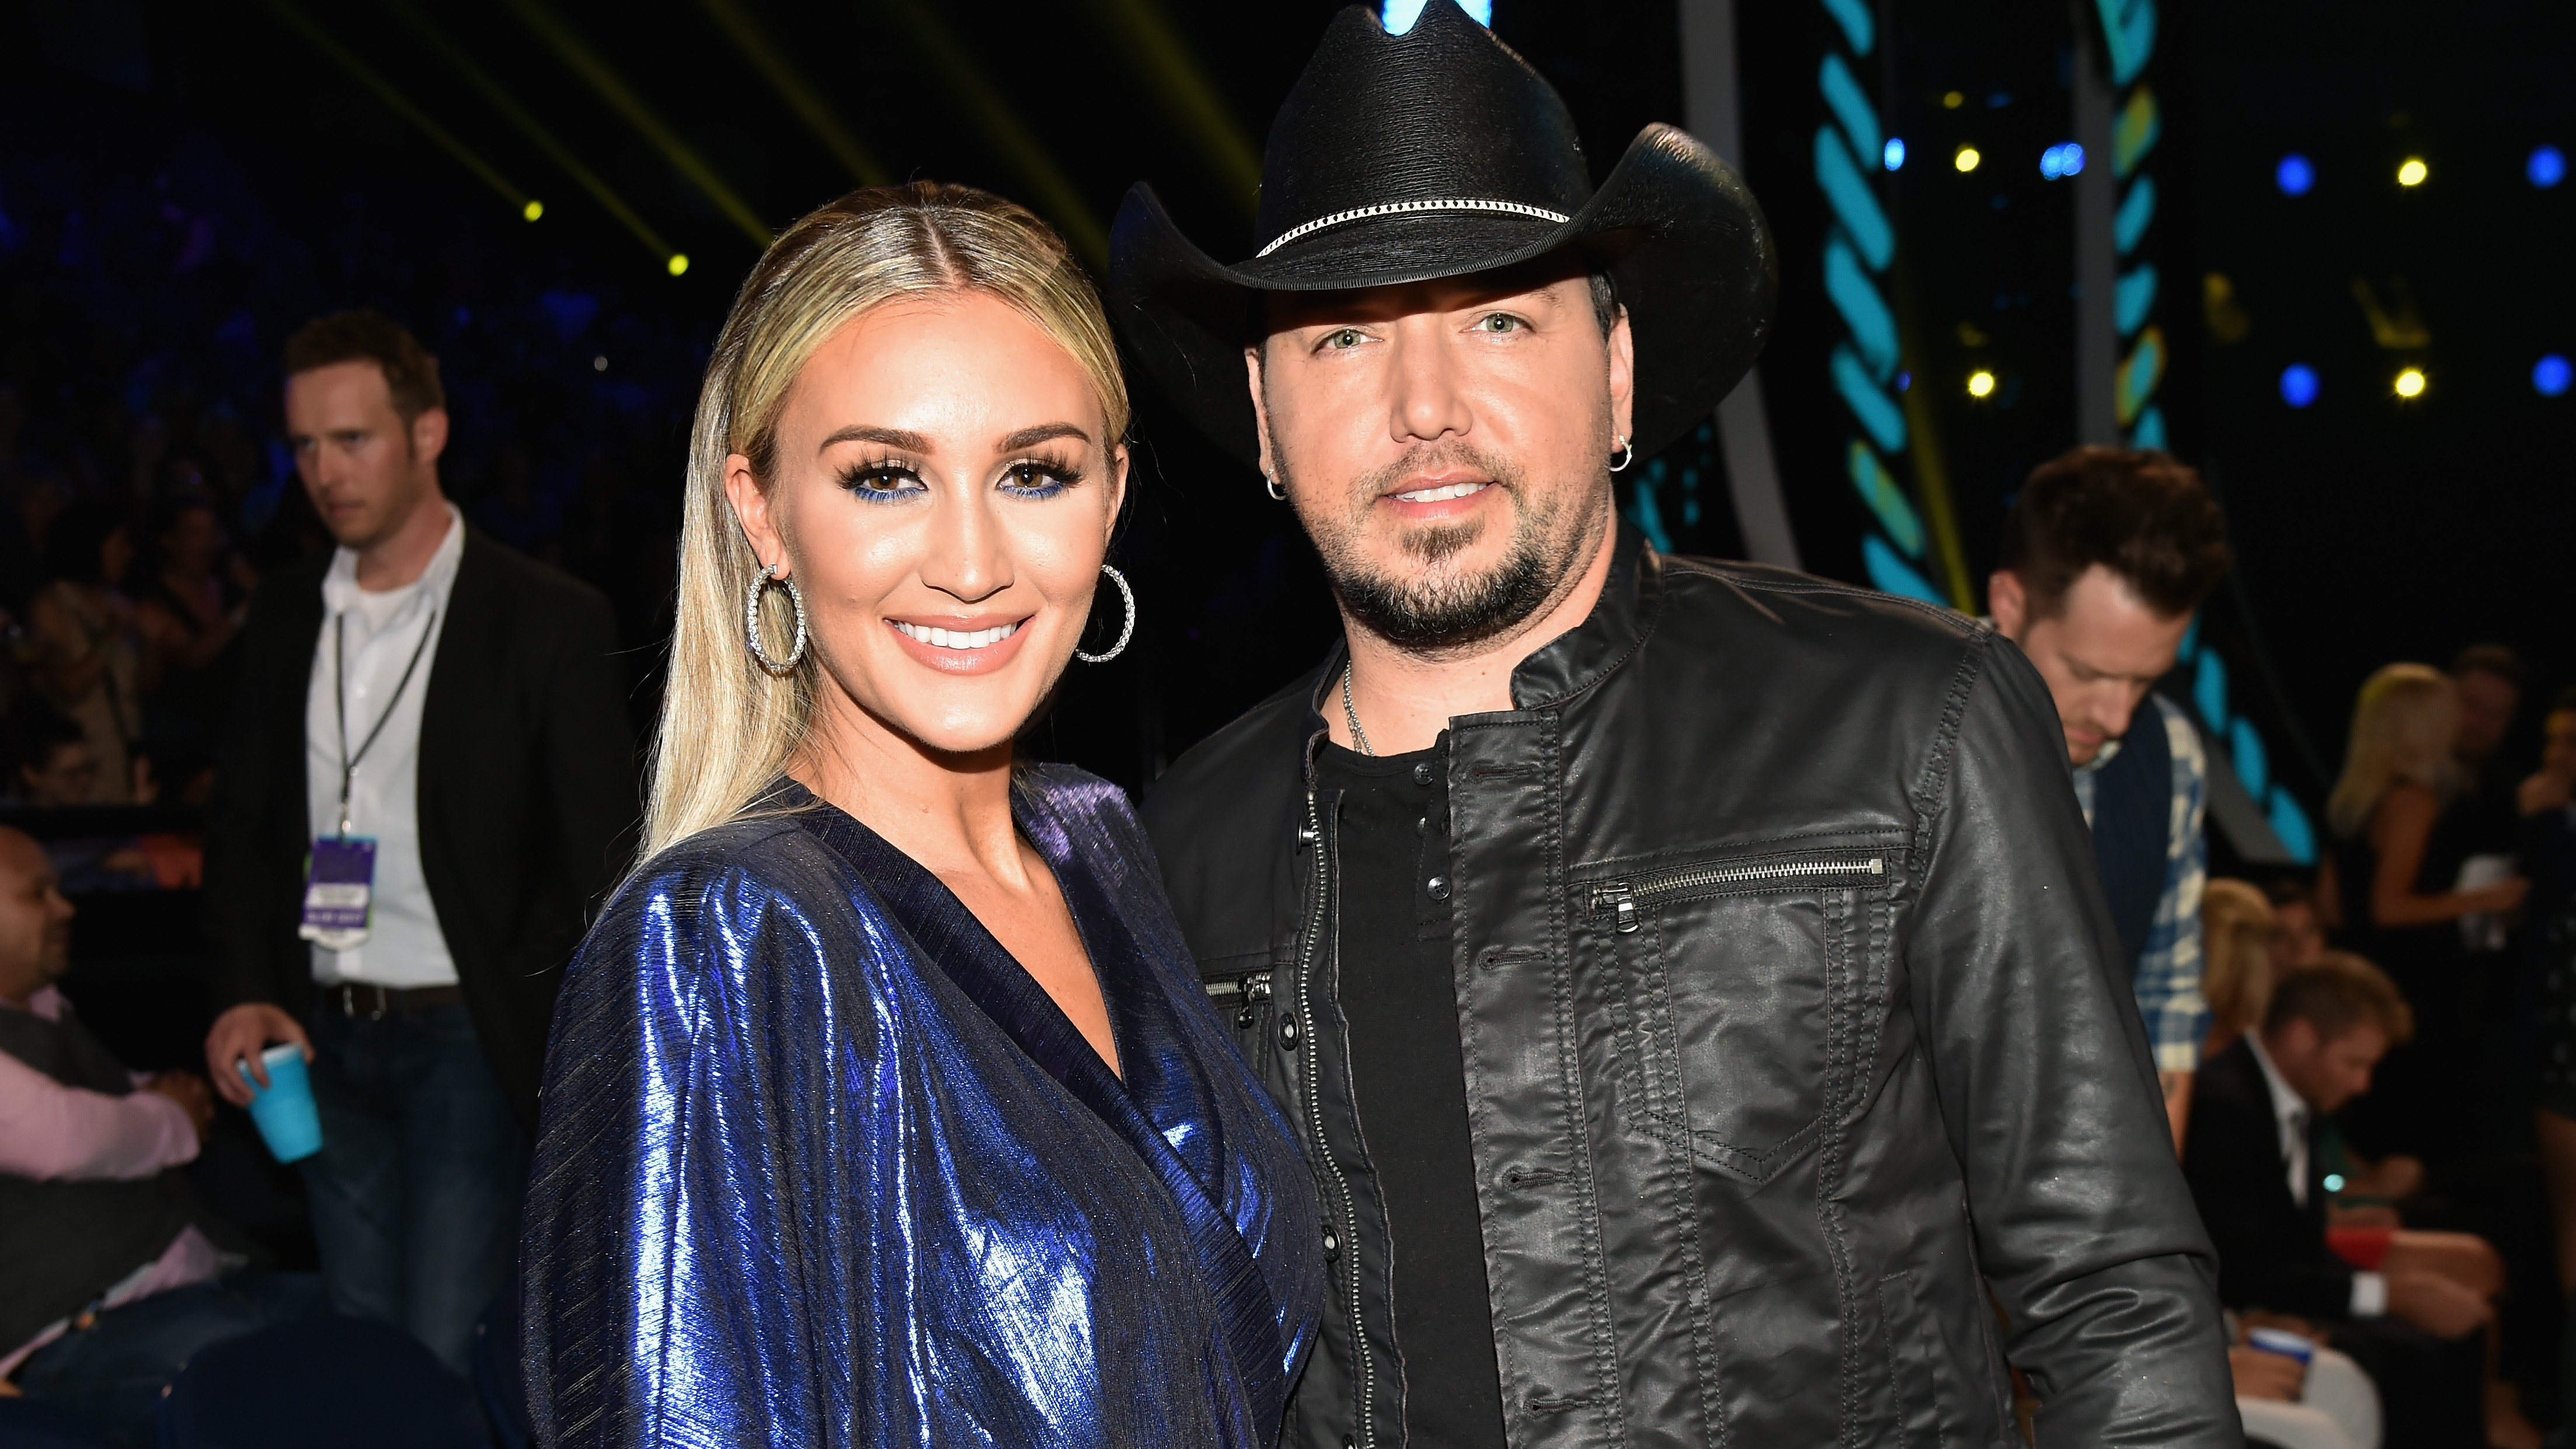 Jason Aldean's wife, Brittany, seemingly throws shade at CMAs over husband not being nominated - Fox News